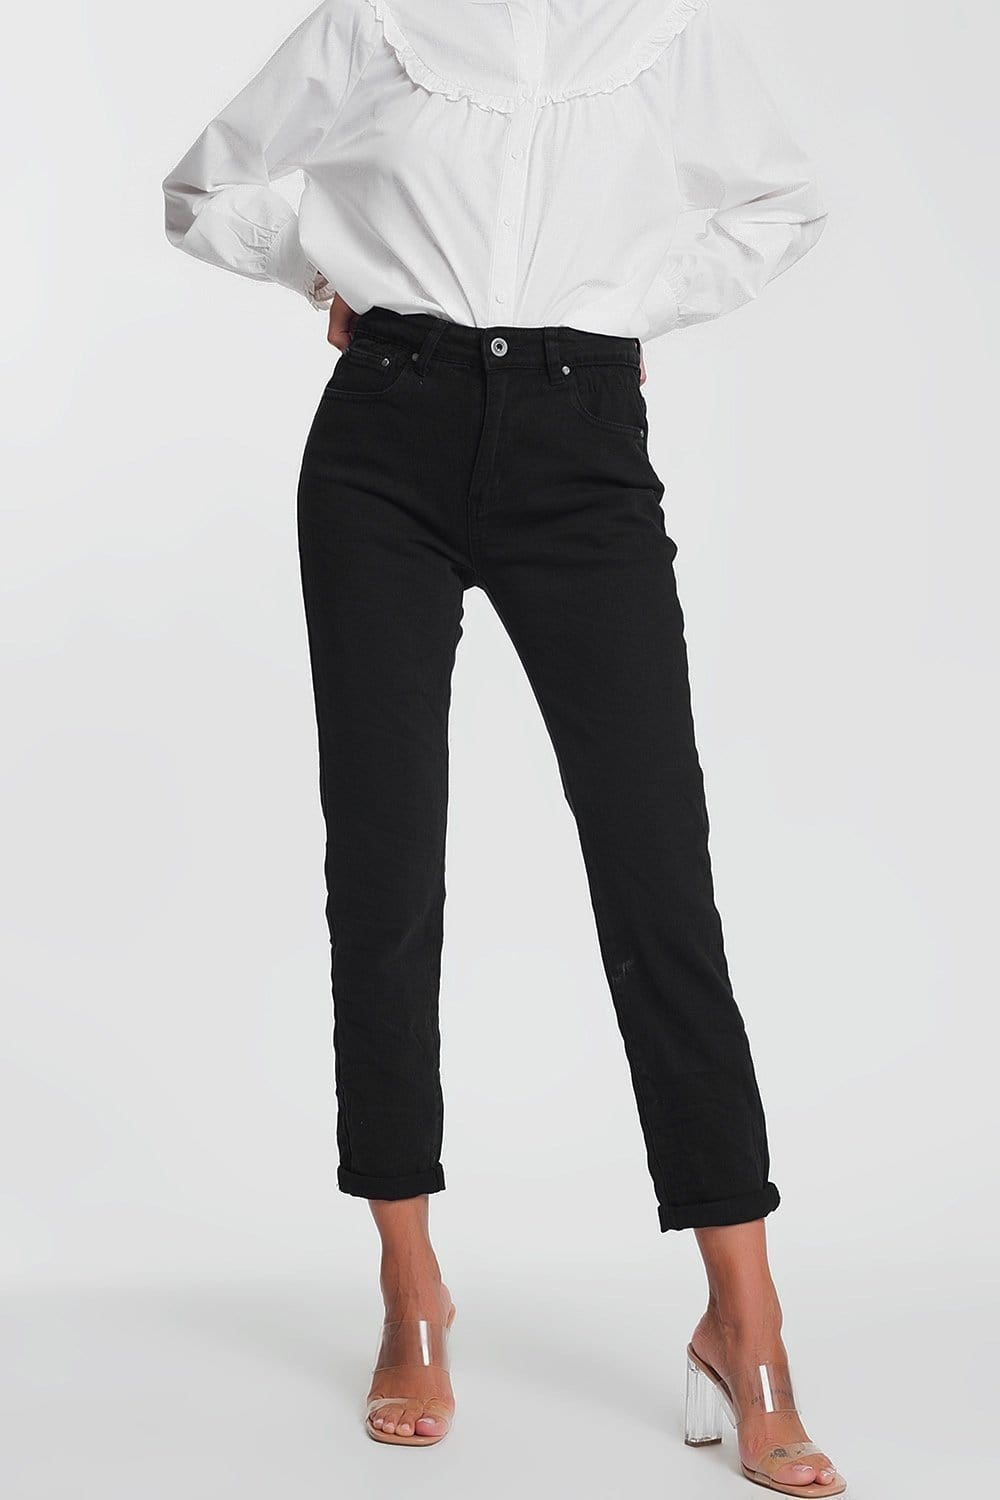 Q2 Straight leg high waisted jeans in black